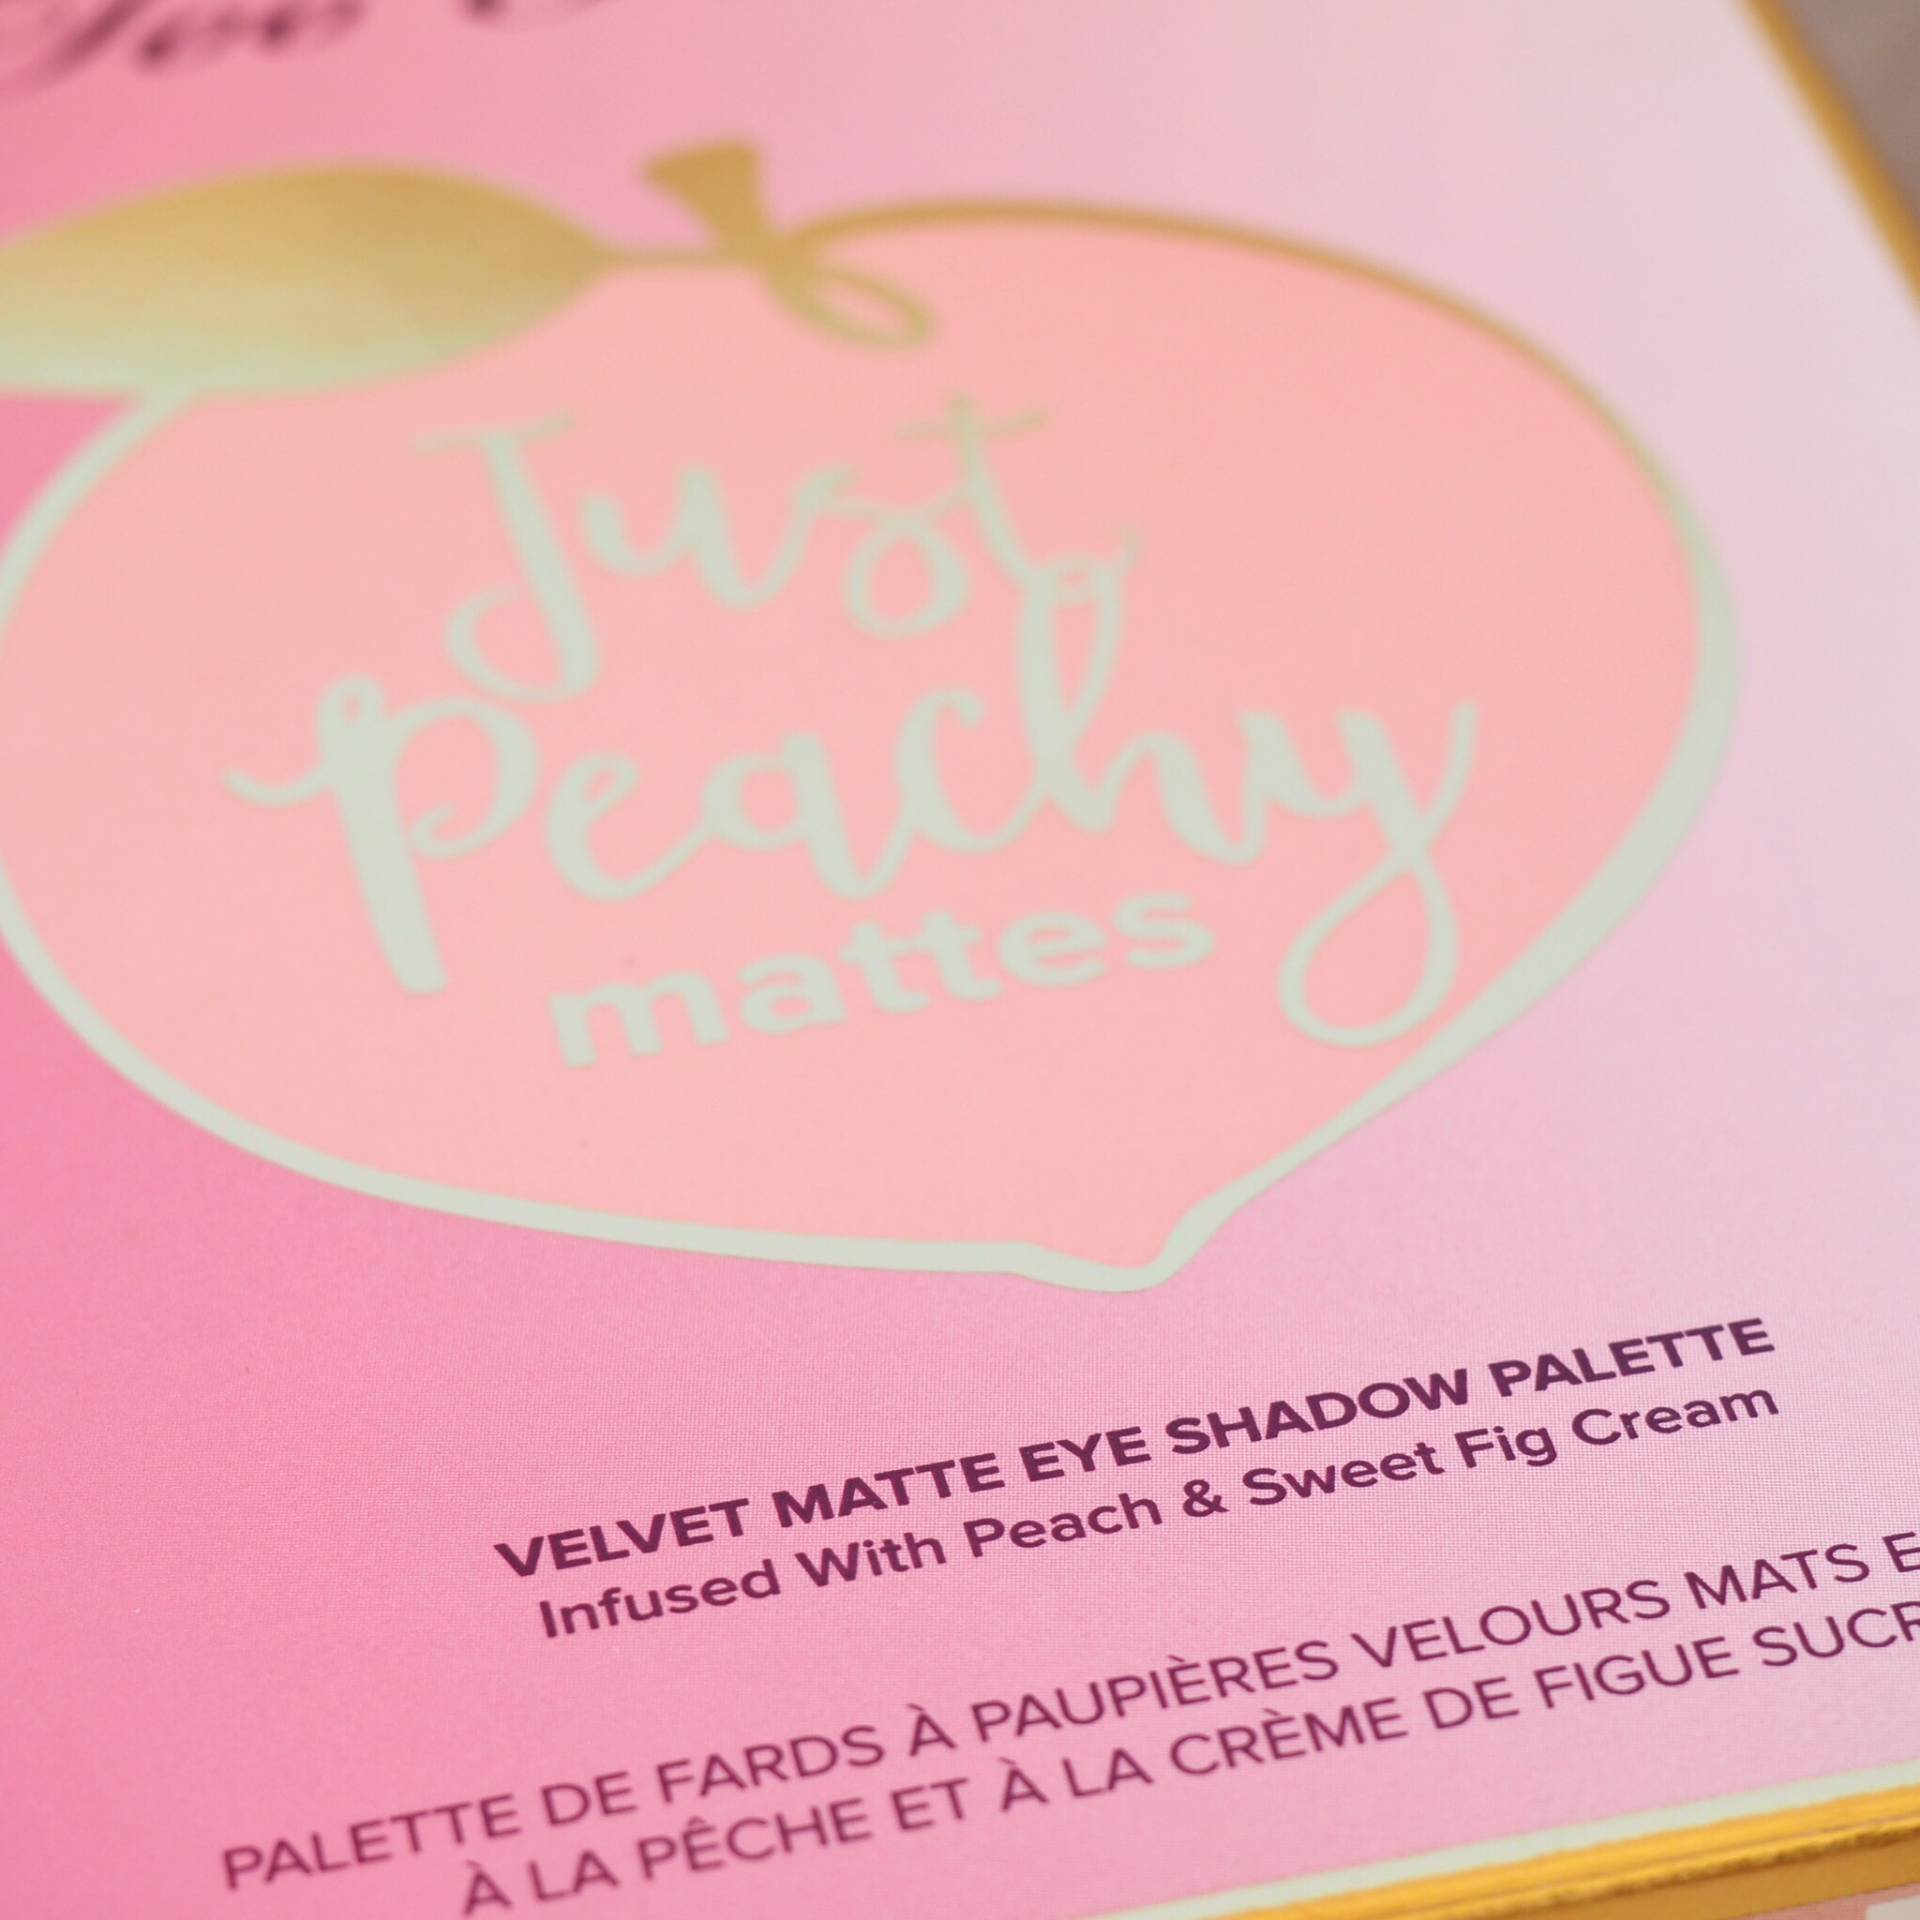 Too Faced Peachy Matte Eyeshadow Palette Review